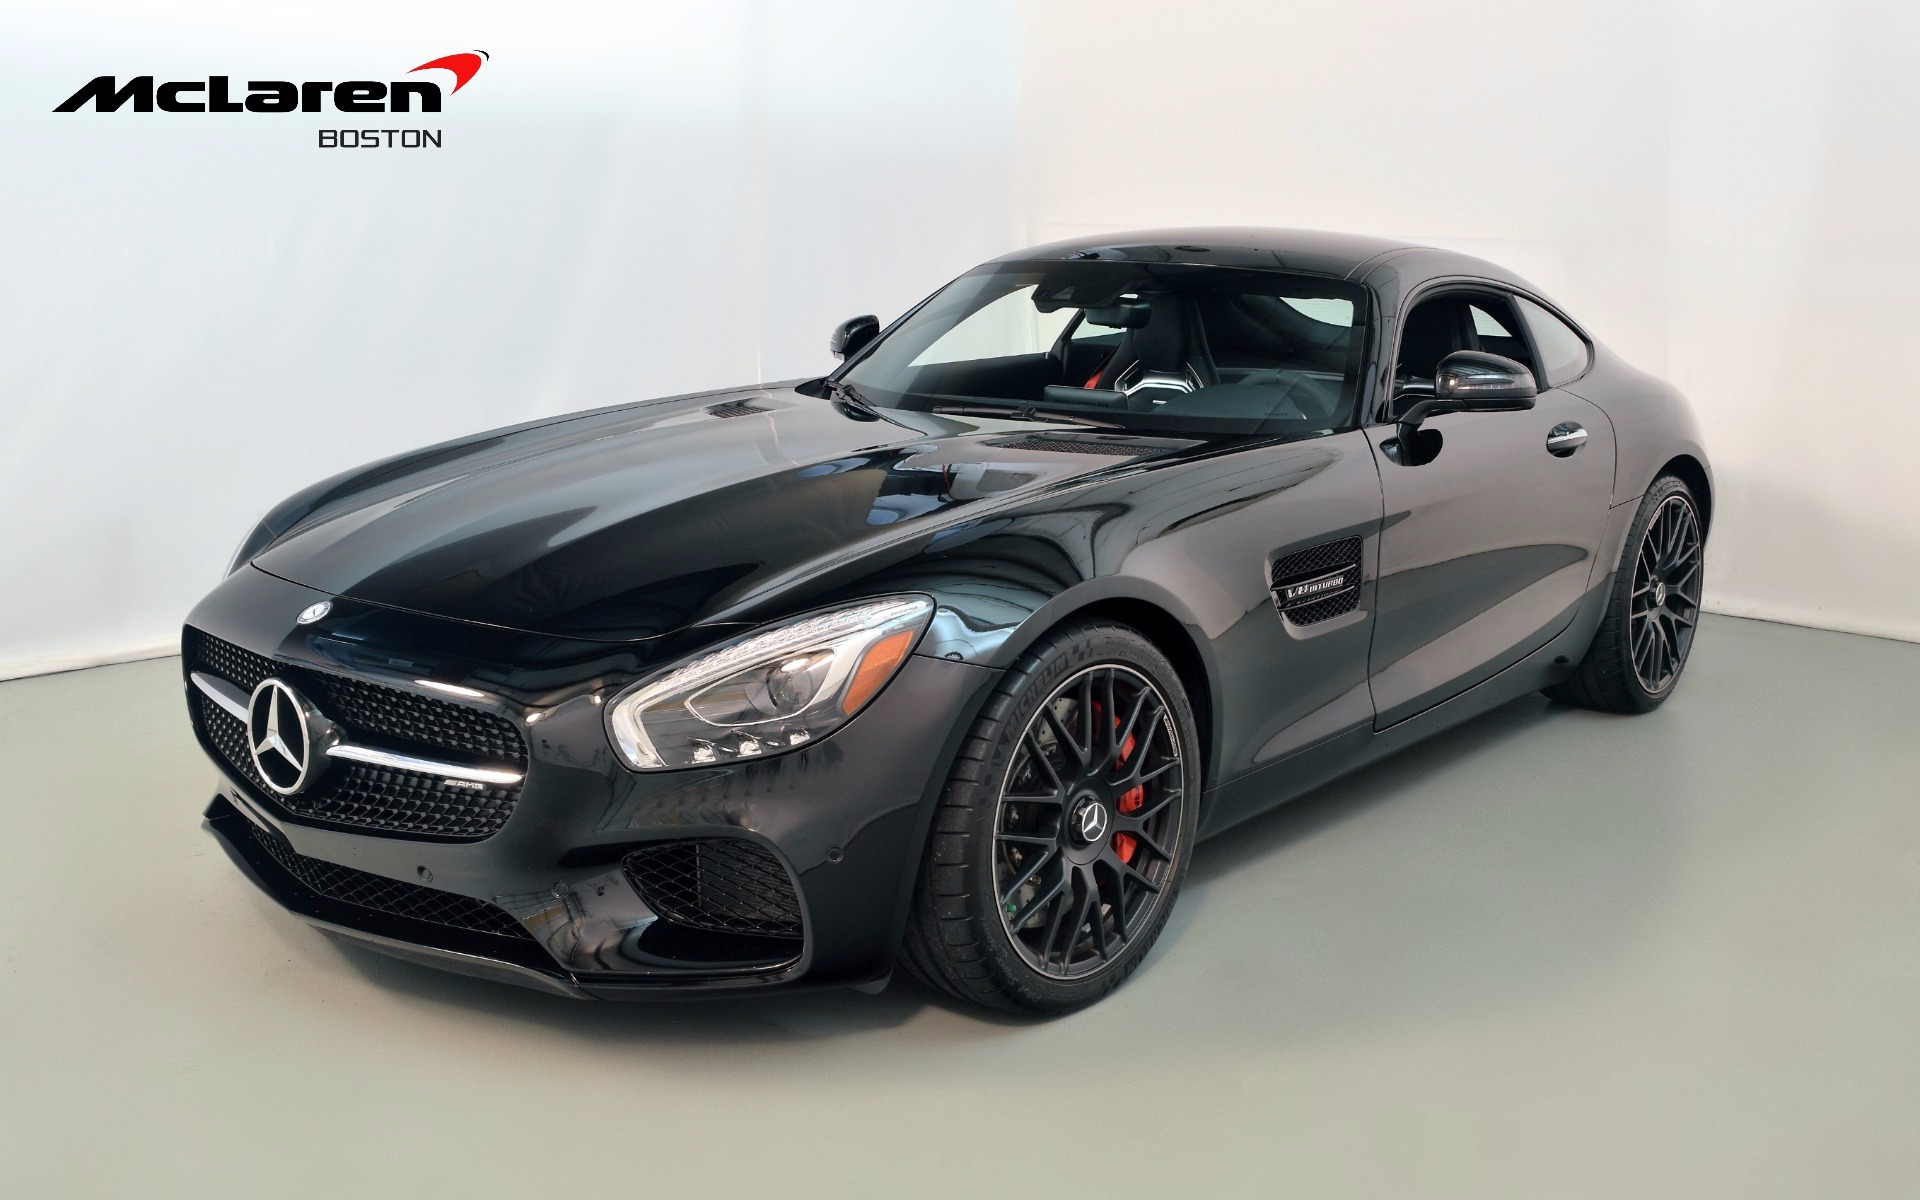 2016 mercedes benz amg gt s for sale in norwell ma 004638 mclaren boston. Black Bedroom Furniture Sets. Home Design Ideas